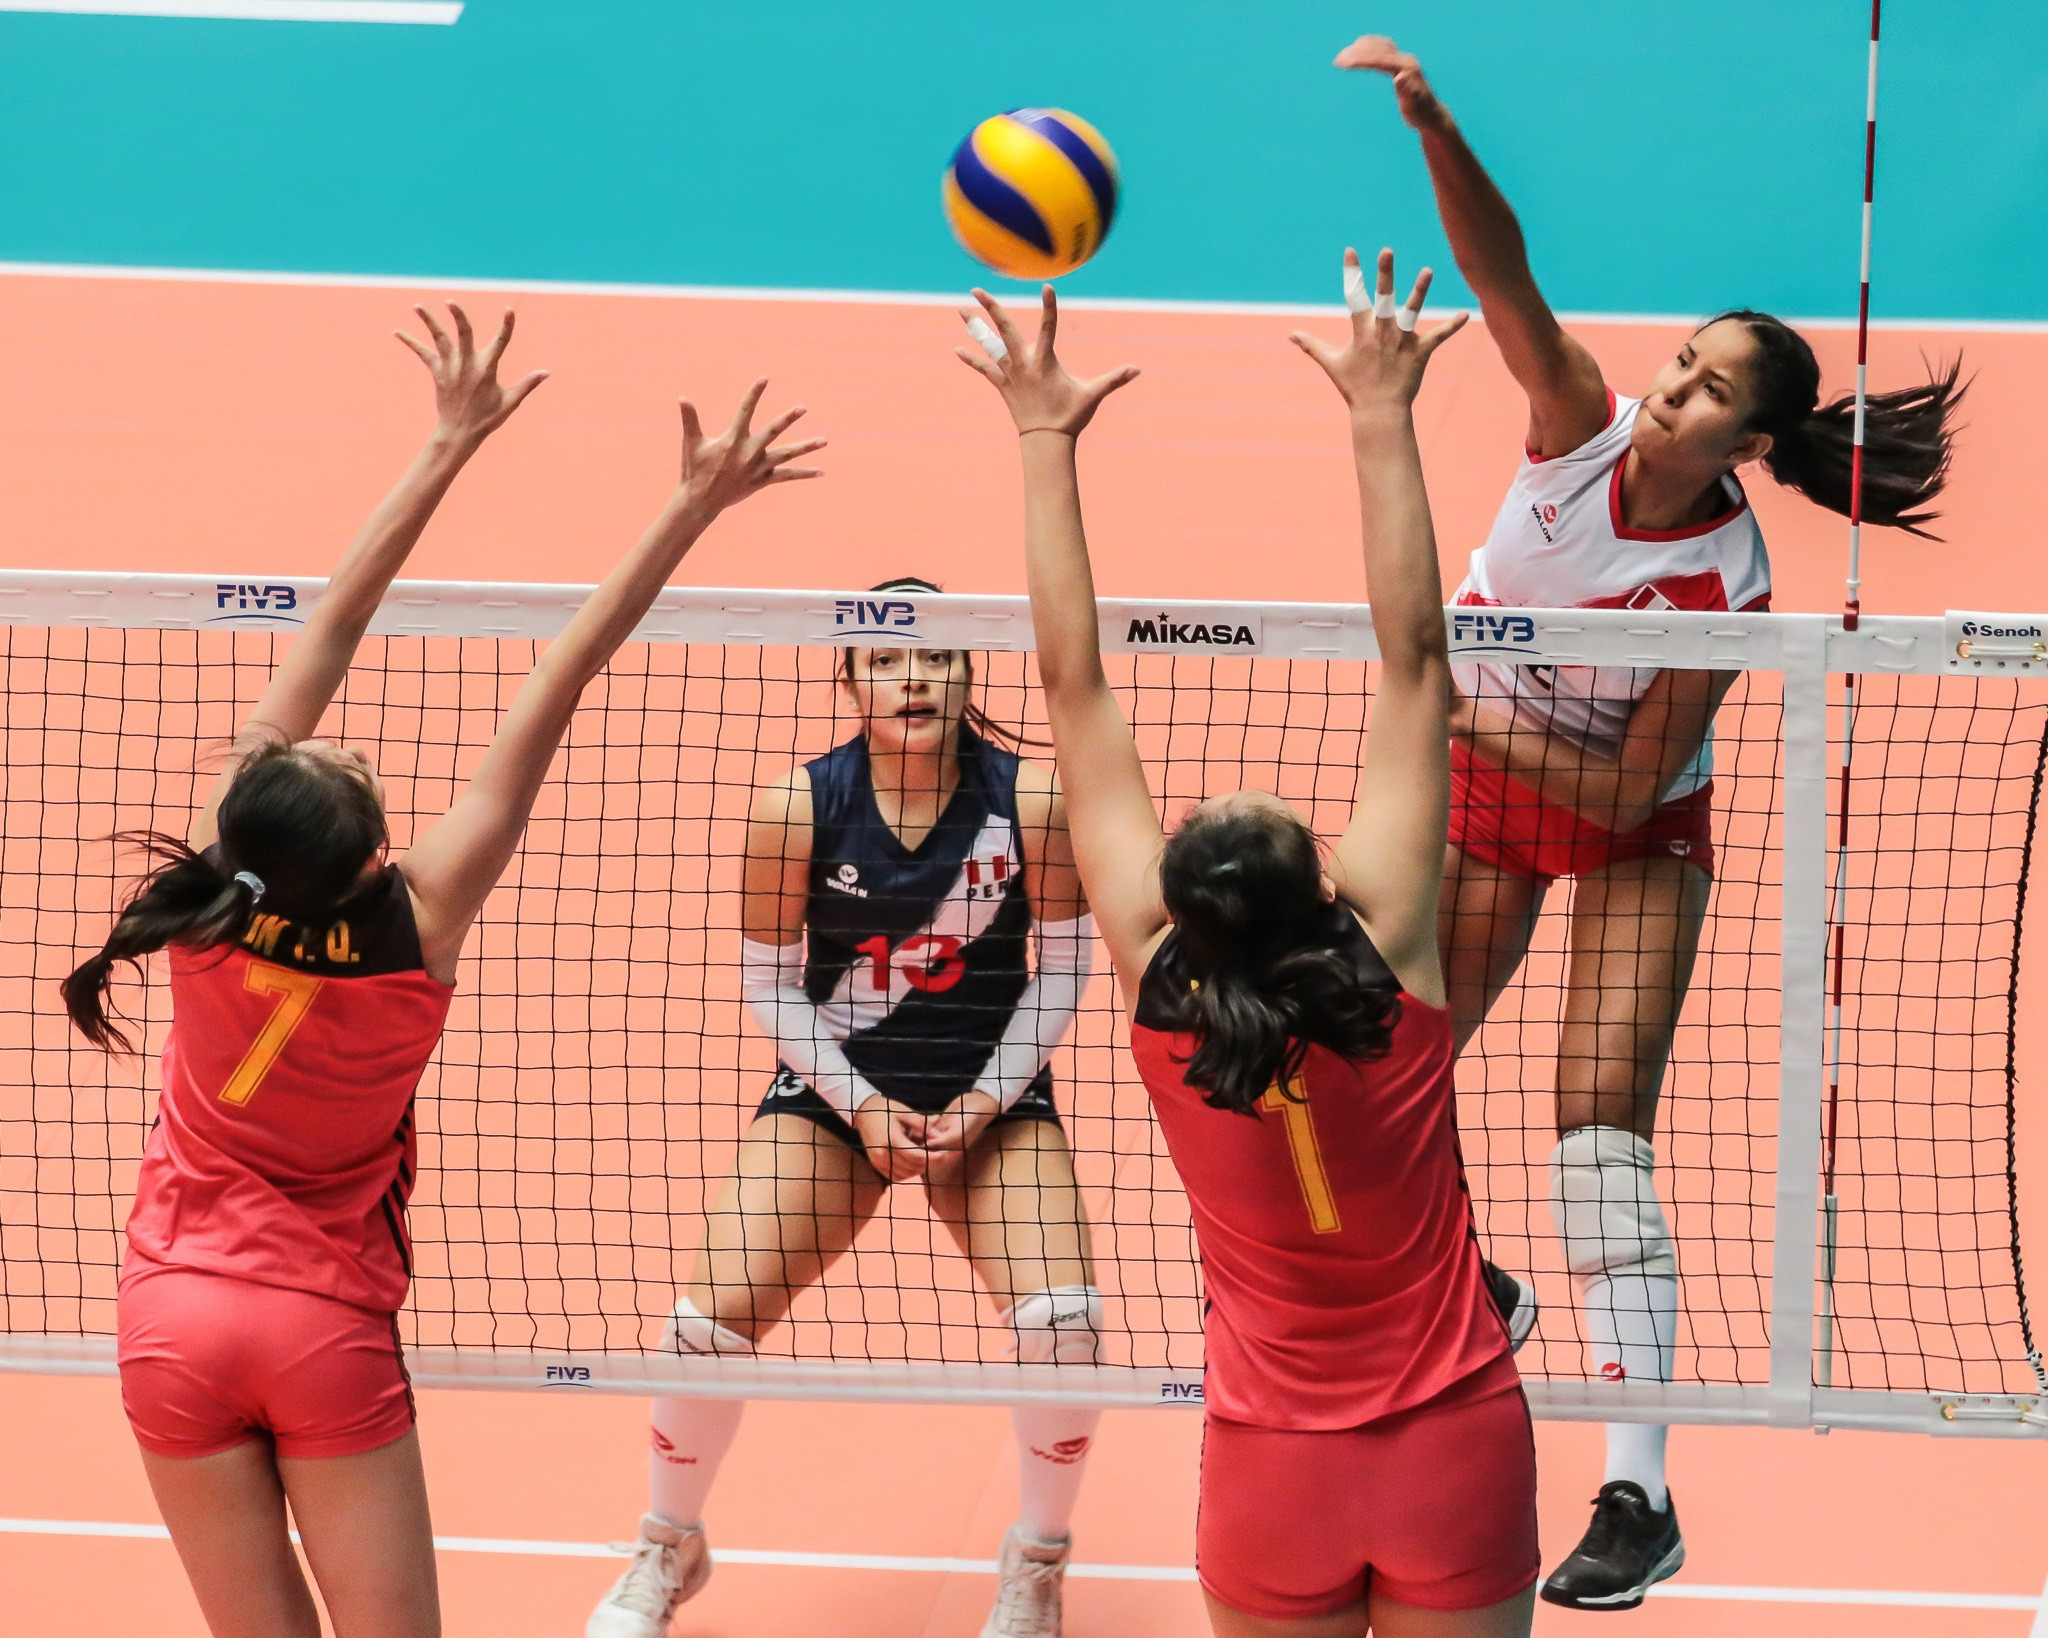 Peru beat holders China on day one of FIVB Women's Under-20 World Championship